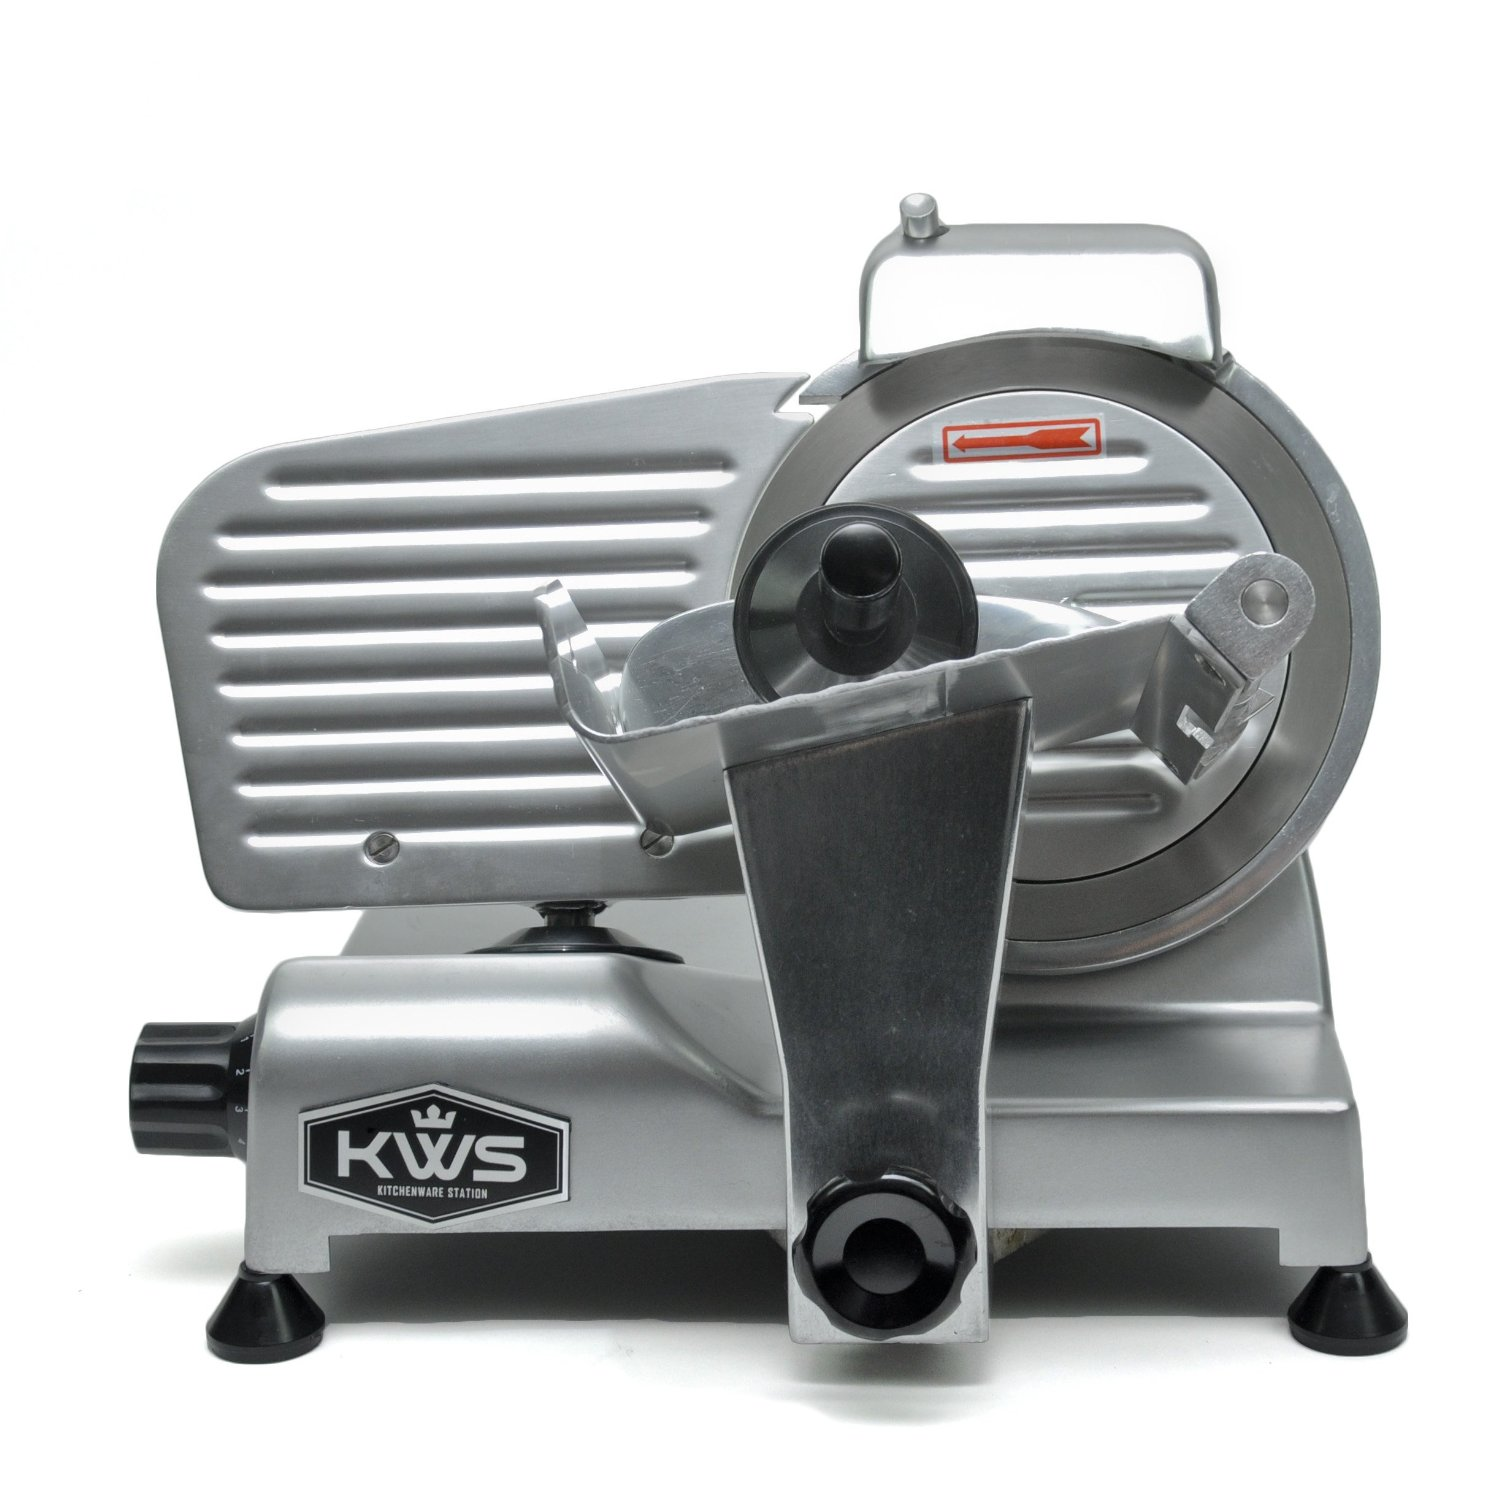 Ms 6ns 6 200w Meat Slicer Silver Base With Stainless